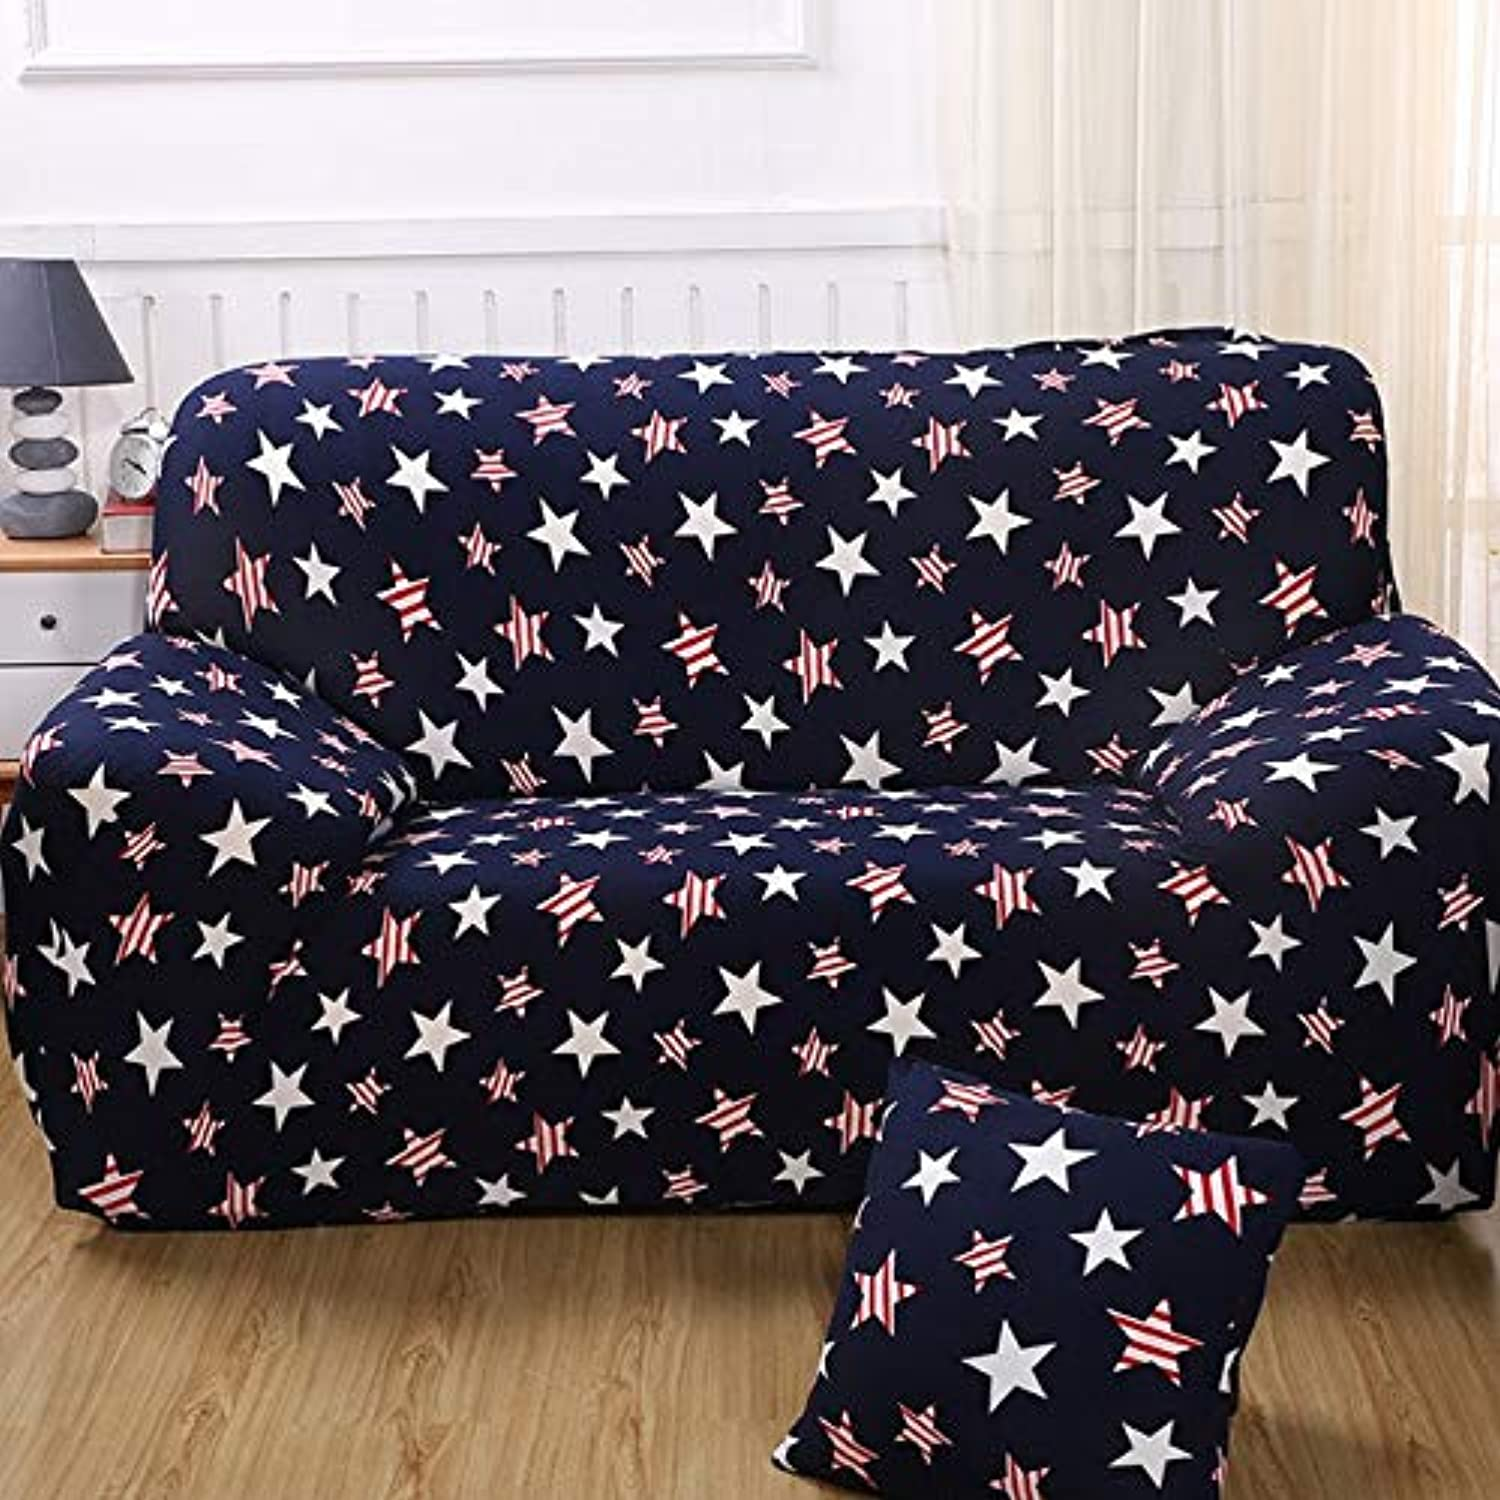 Universal Sofa Cover for Chair Armchair Corner Sofa Stretch Elastic Couch Covers L Shaped Sofa Slipcover Living Room SC007-1   8, 2 Seater